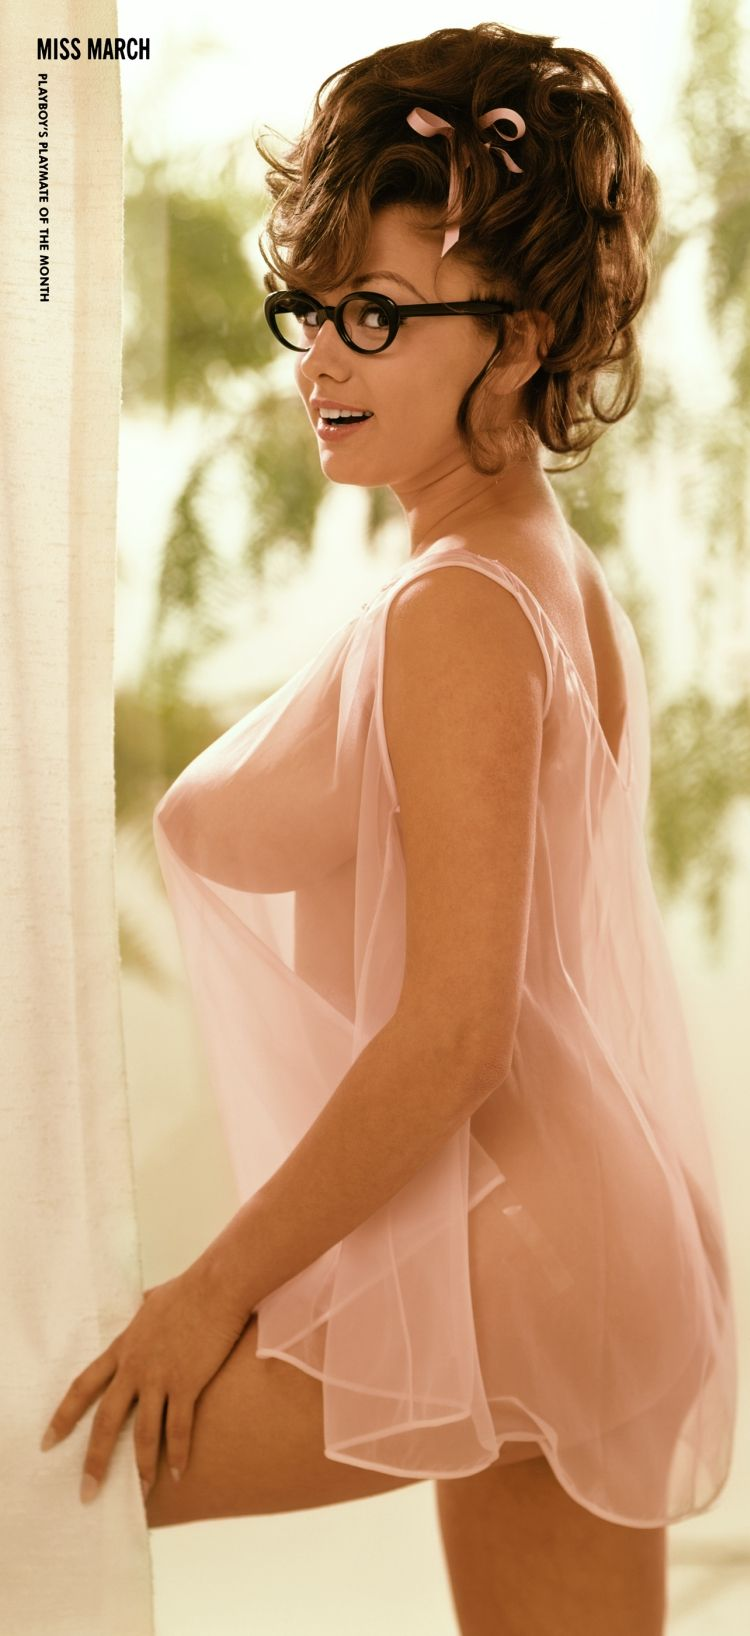 Fran Gerard - the beauty of the past for fans of delicious natural forms - 01